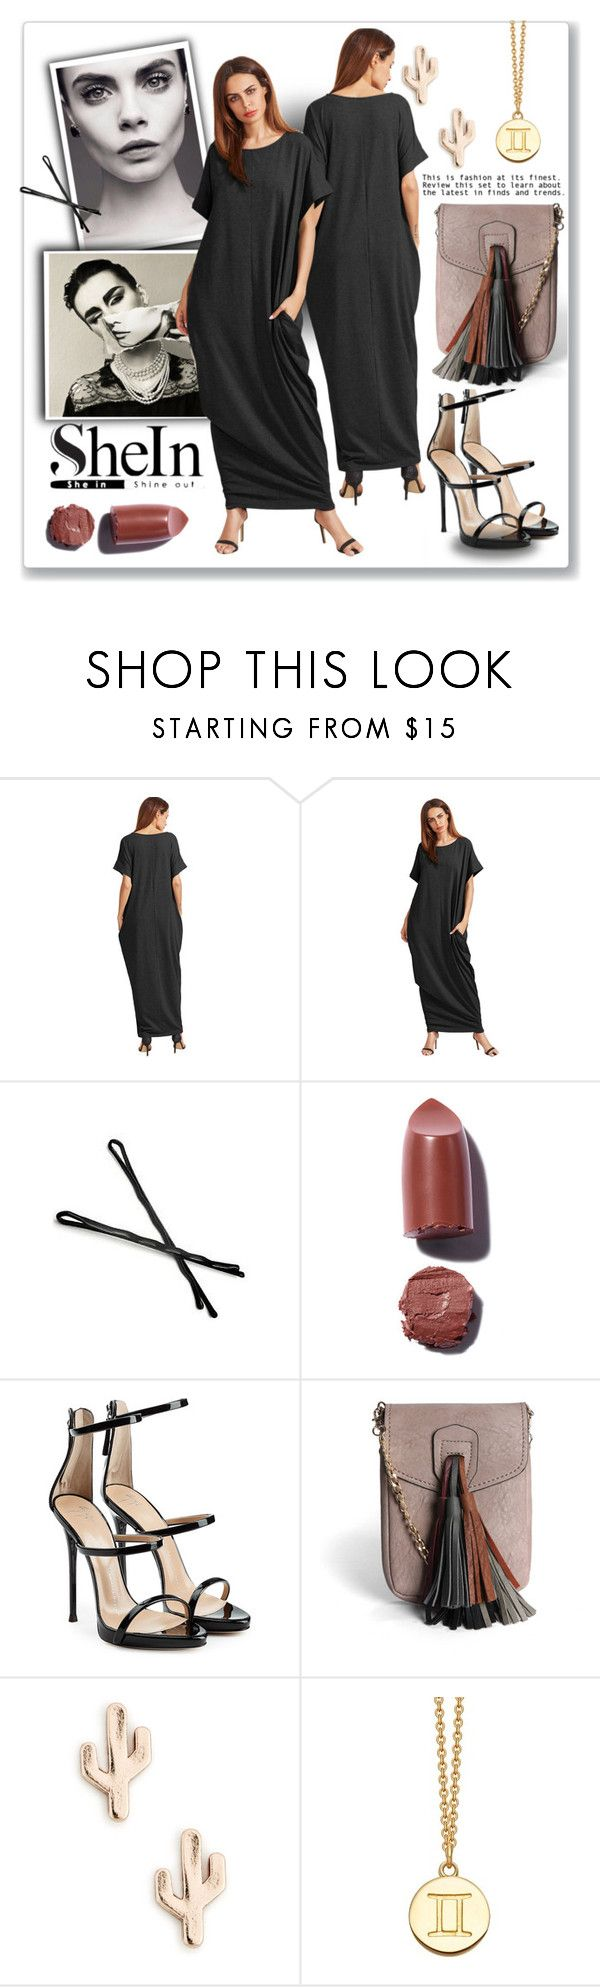 """Gemini"" by grizmosis ❤ liked on Polyvore featuring Giuseppe Zanotti, Melie Bianco, Sole Society and Astley Clarke"